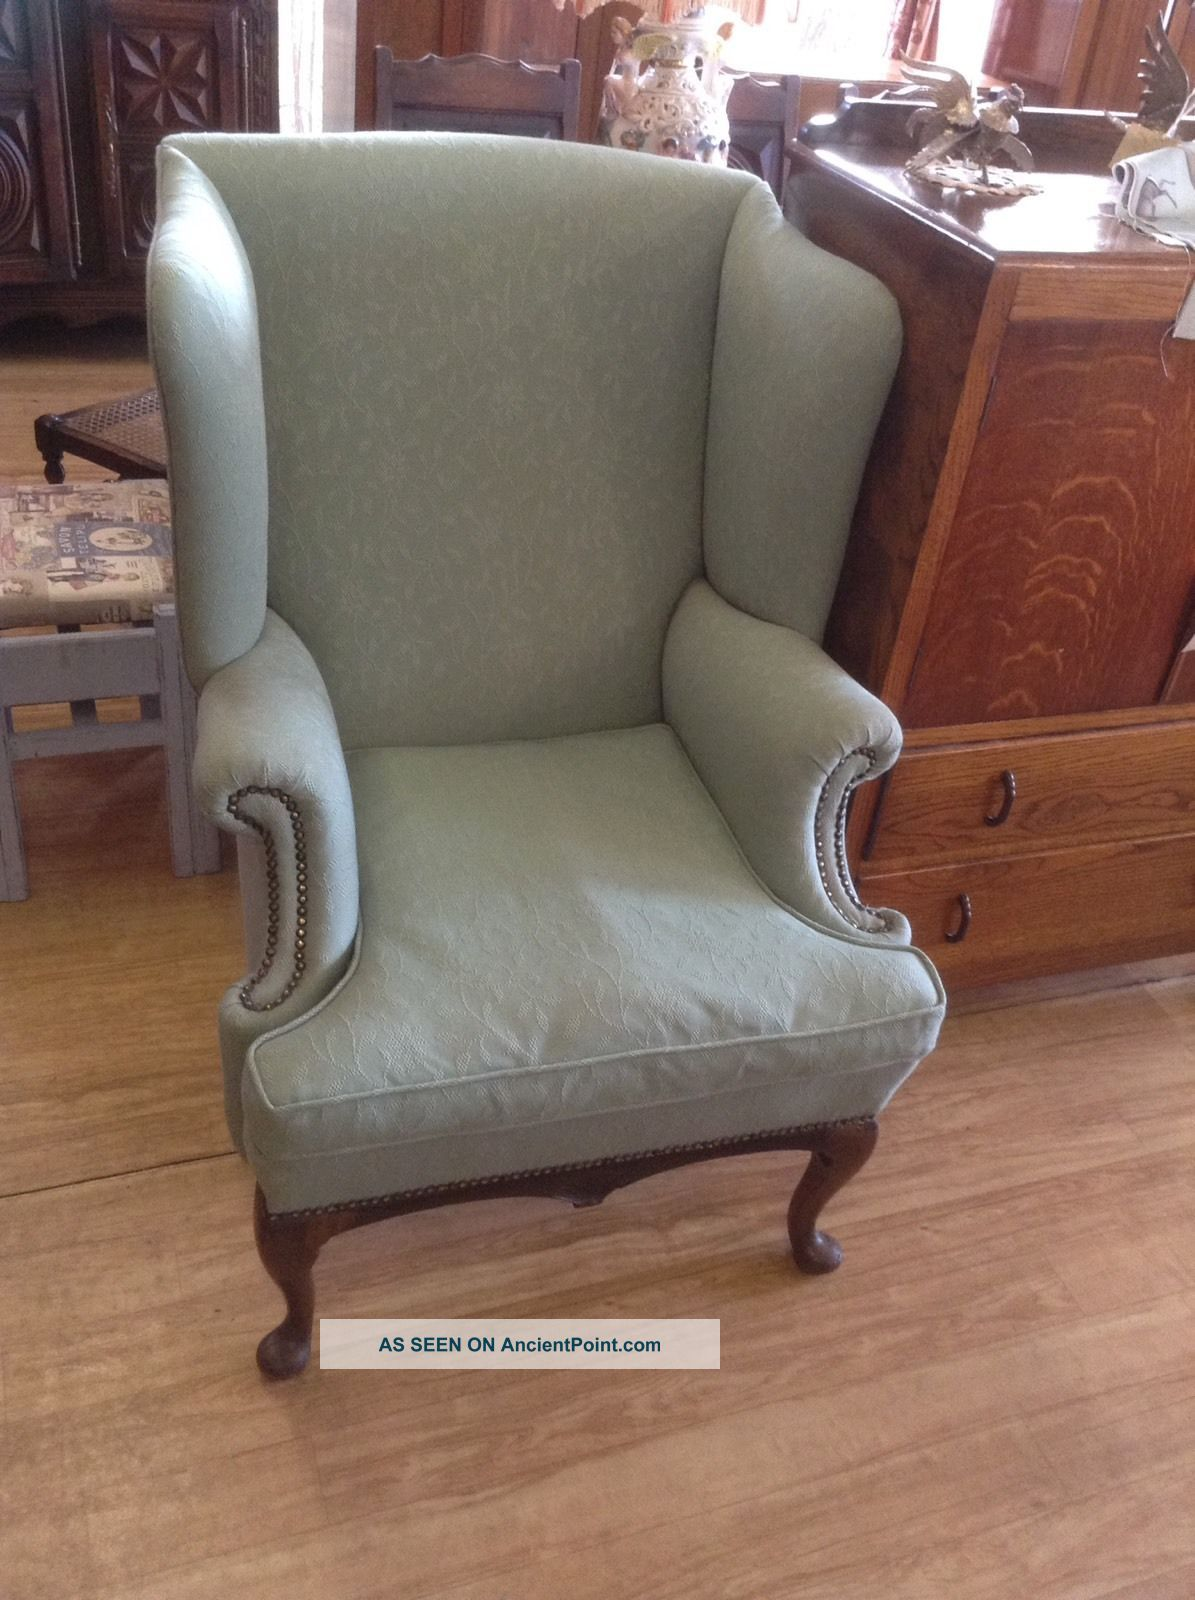 Wingback Chair Armchair 1900-1950 photo